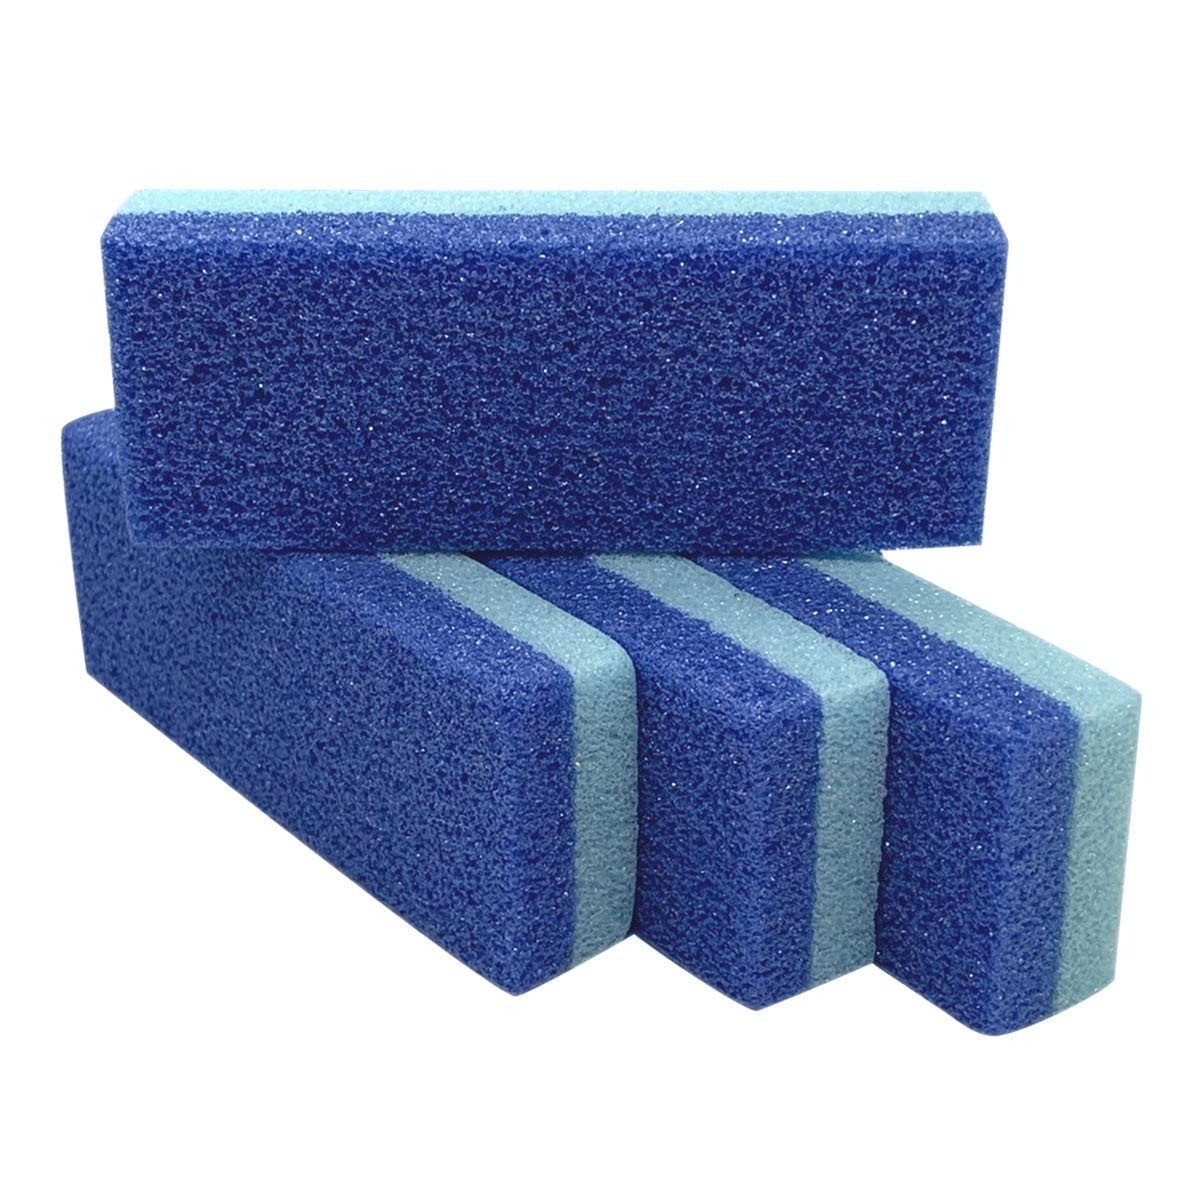 Maryton Foot Pumice Stone, four pack, in blue